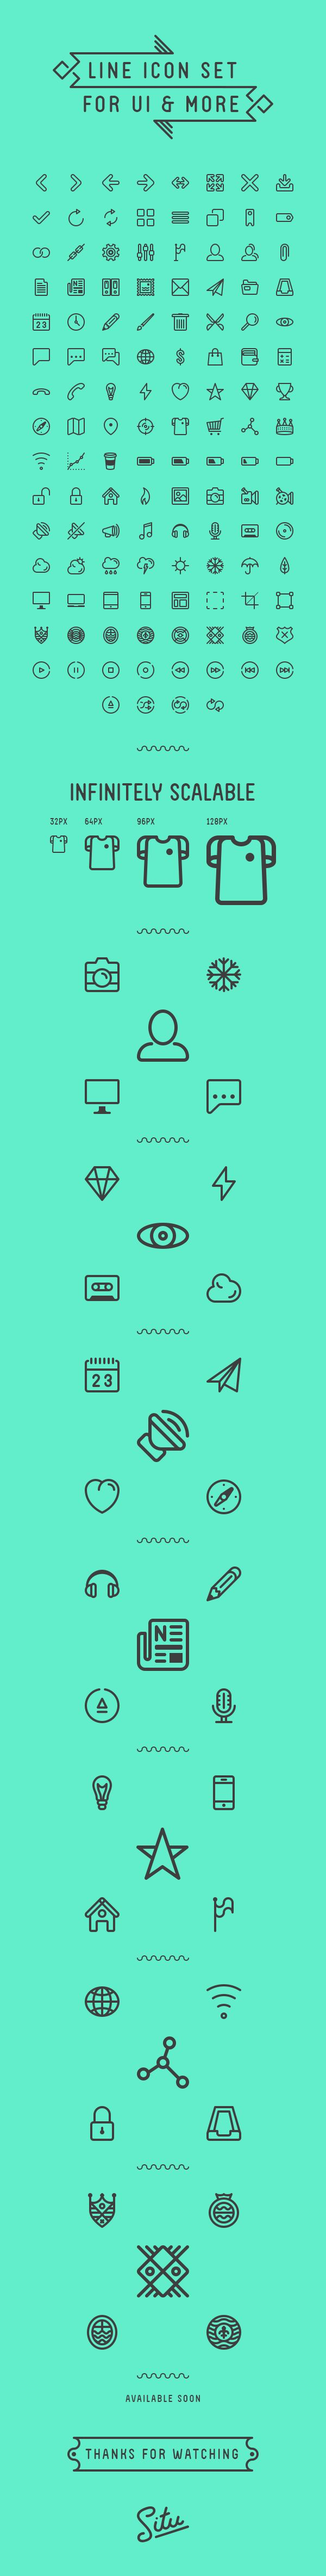 New Icon Trends | Abduzeedo Design Inspiration